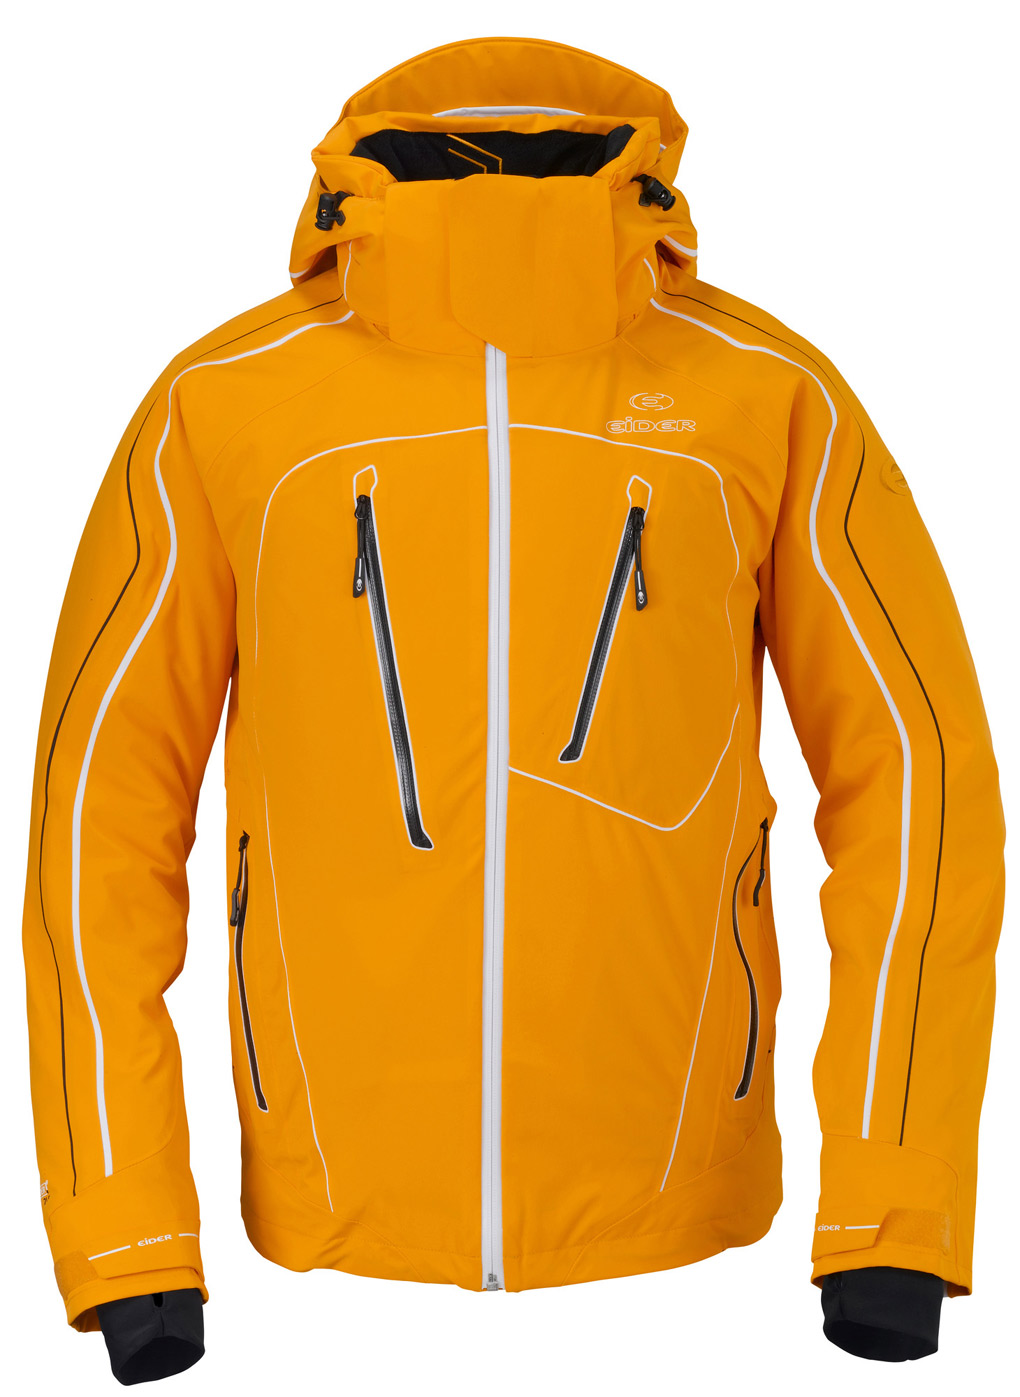 Photo of the Eider Niseko Jacket, Blister Gear Review.